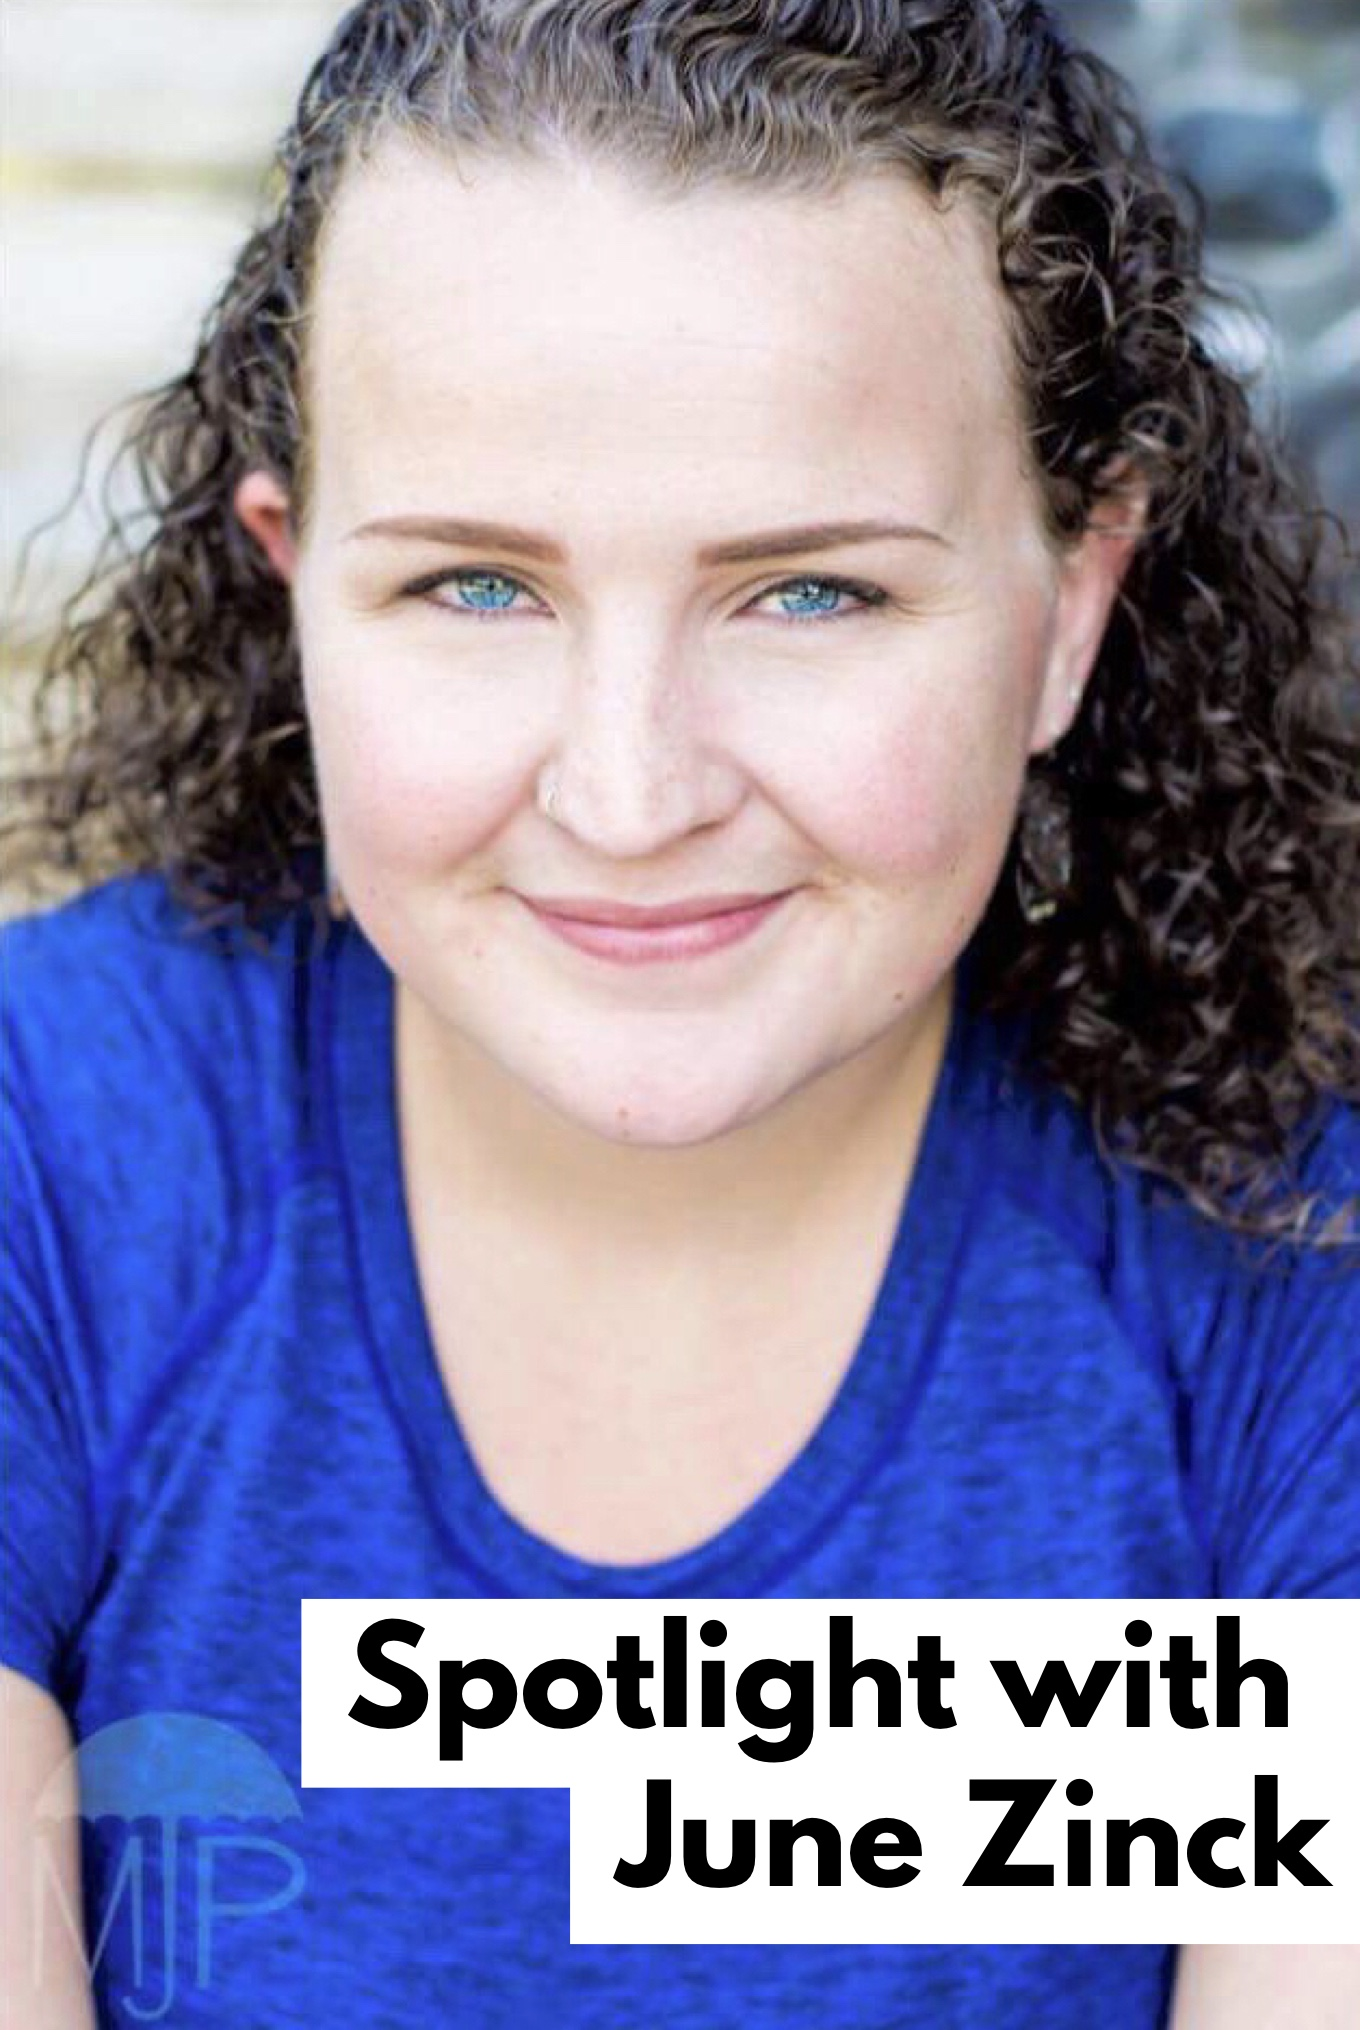 June.zinck.spotlight.